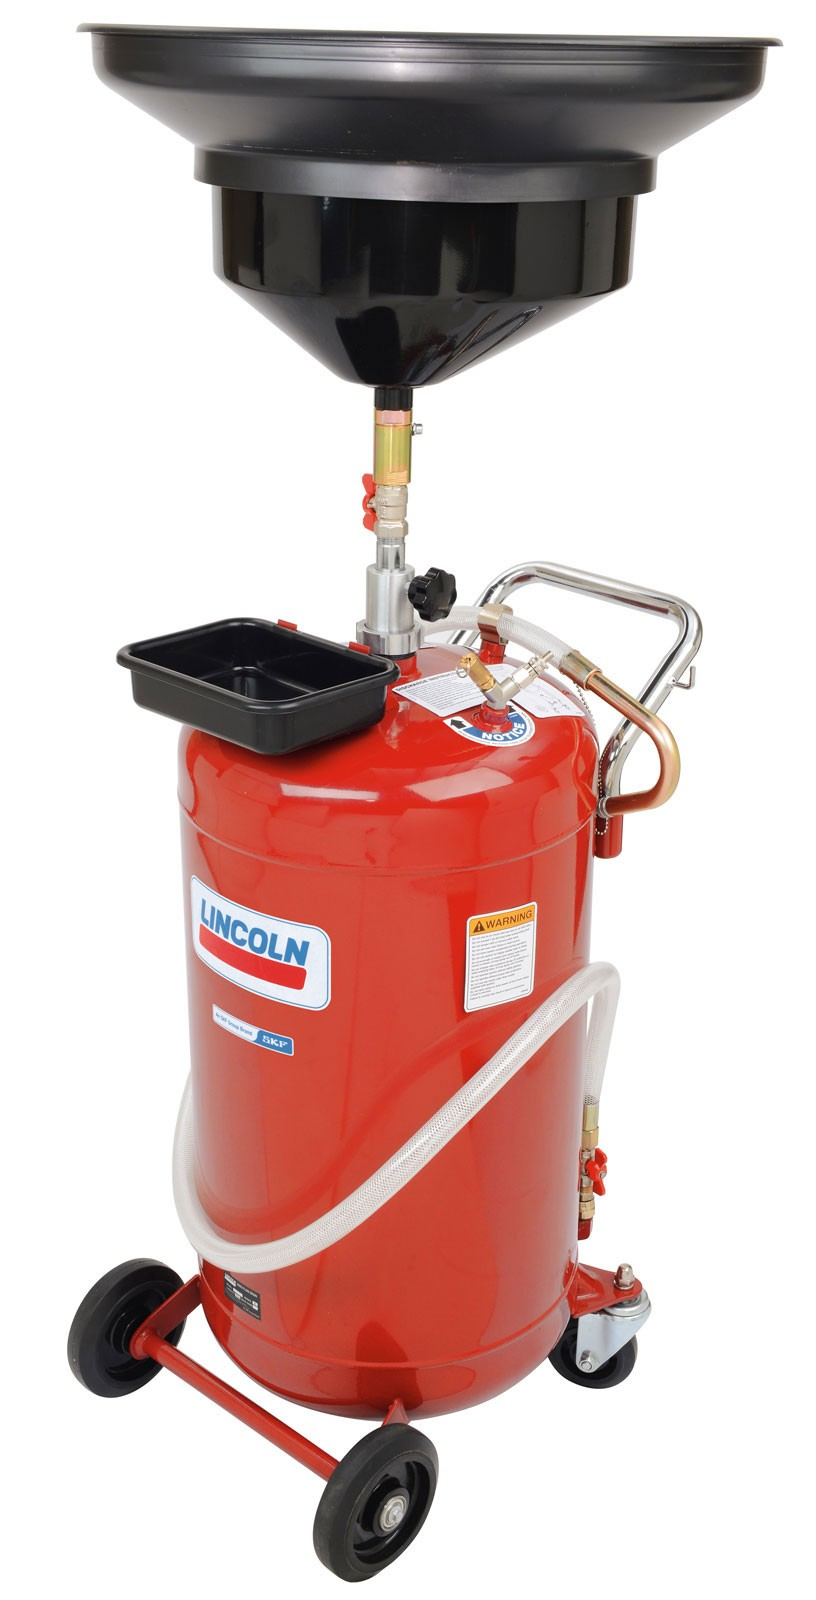 Lincoln 3635 25 Gallon Portable Used Fluid Gravity Drain